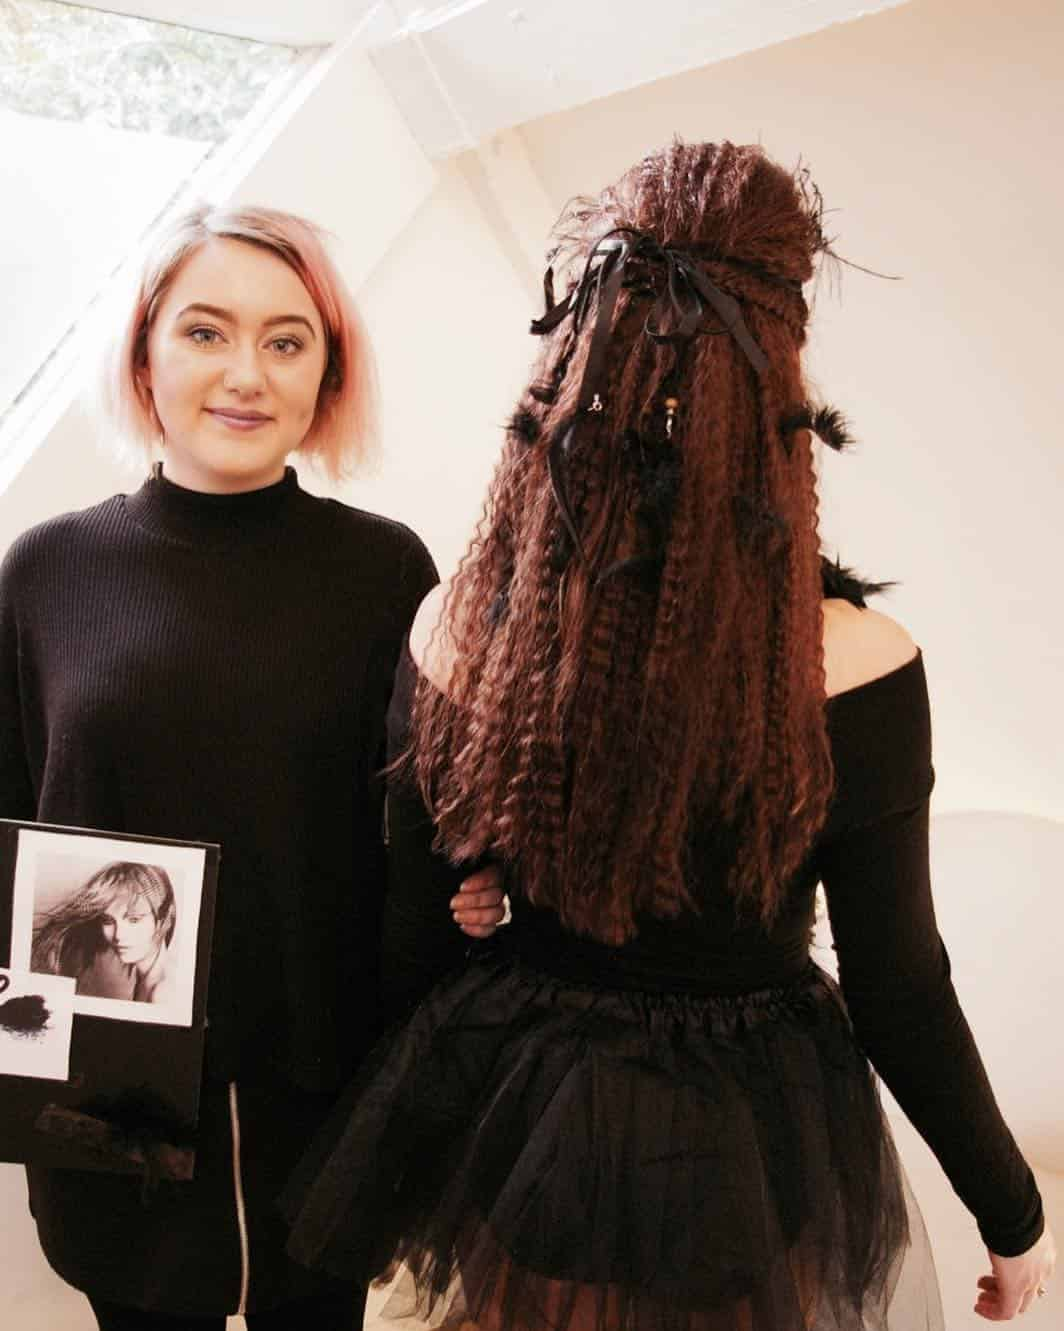 Millie (Stylist at Sadler Gate) with black swan themed model.